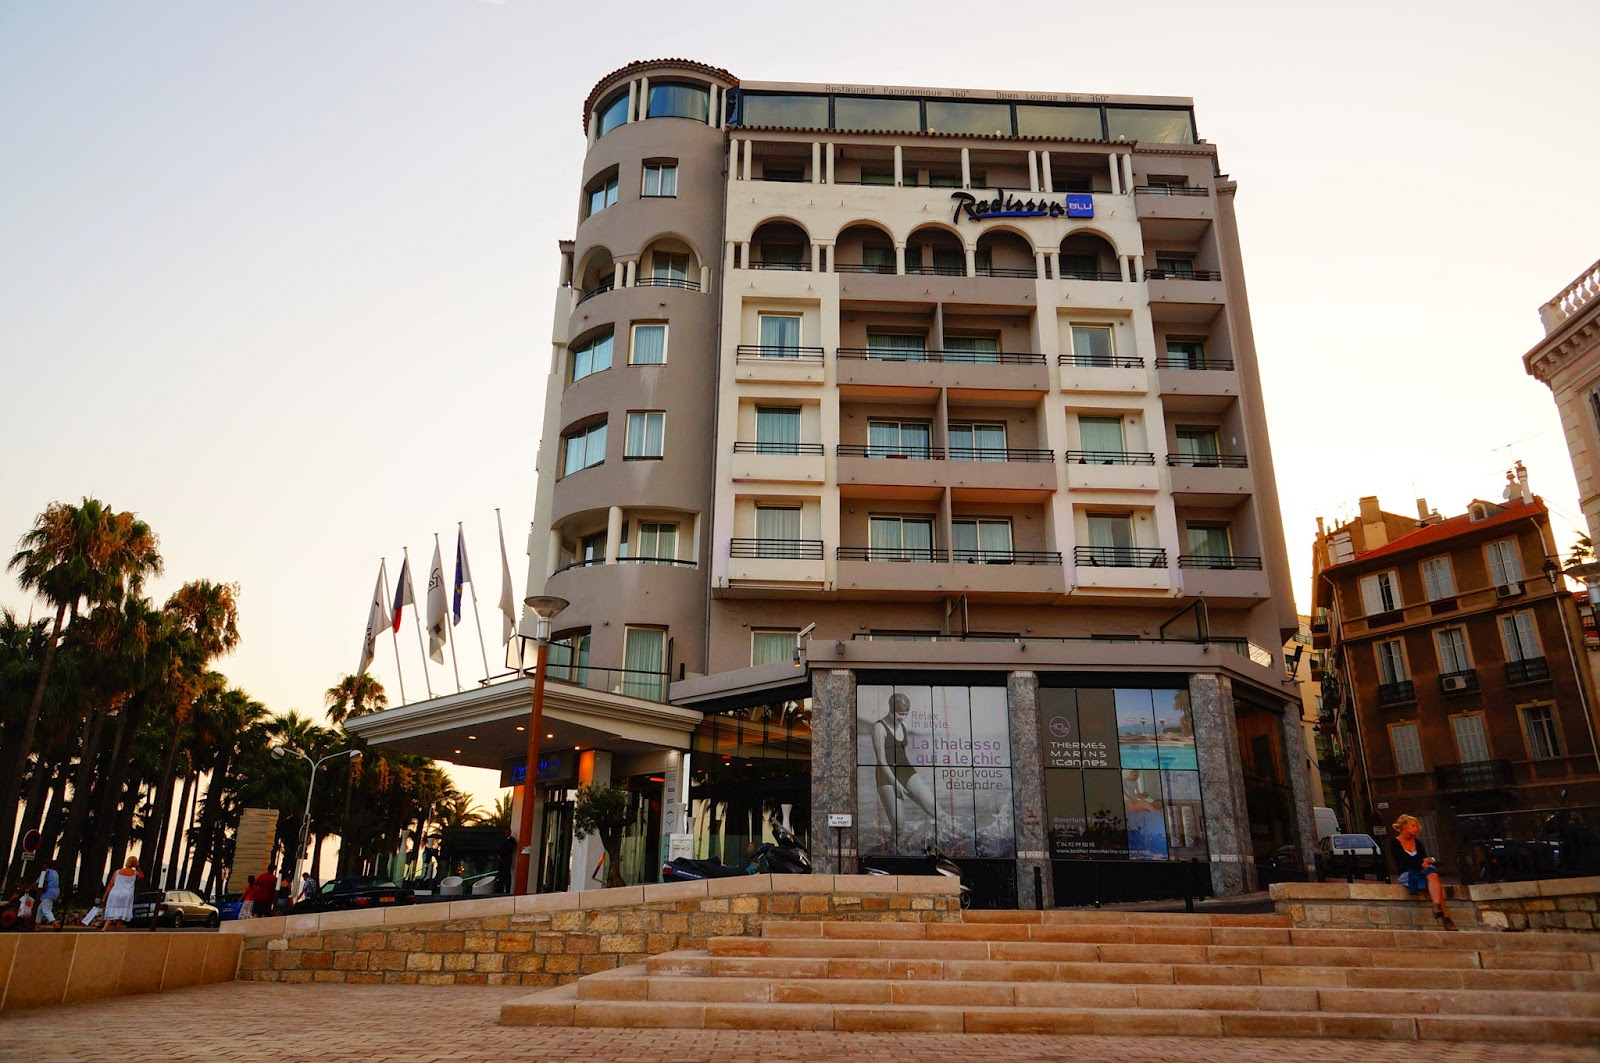 Radisson-Cannes